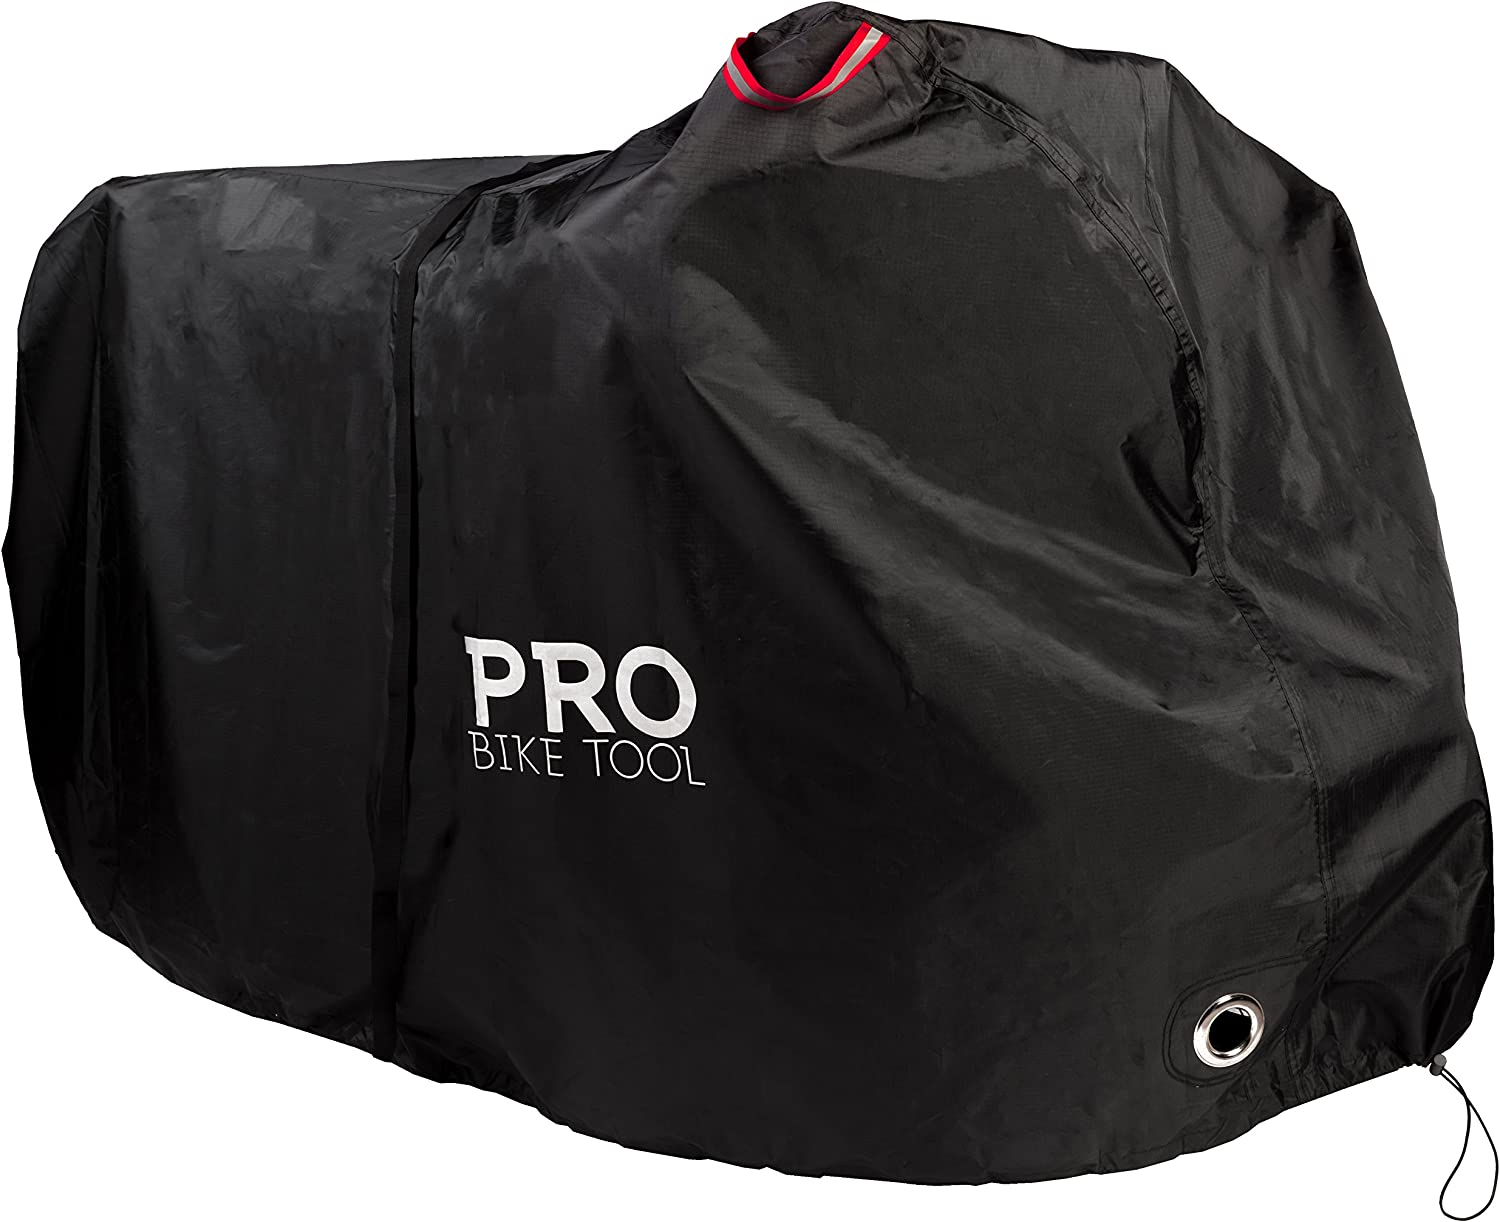 7. Pro Bike Cover for Outdoor Bicycle Storage